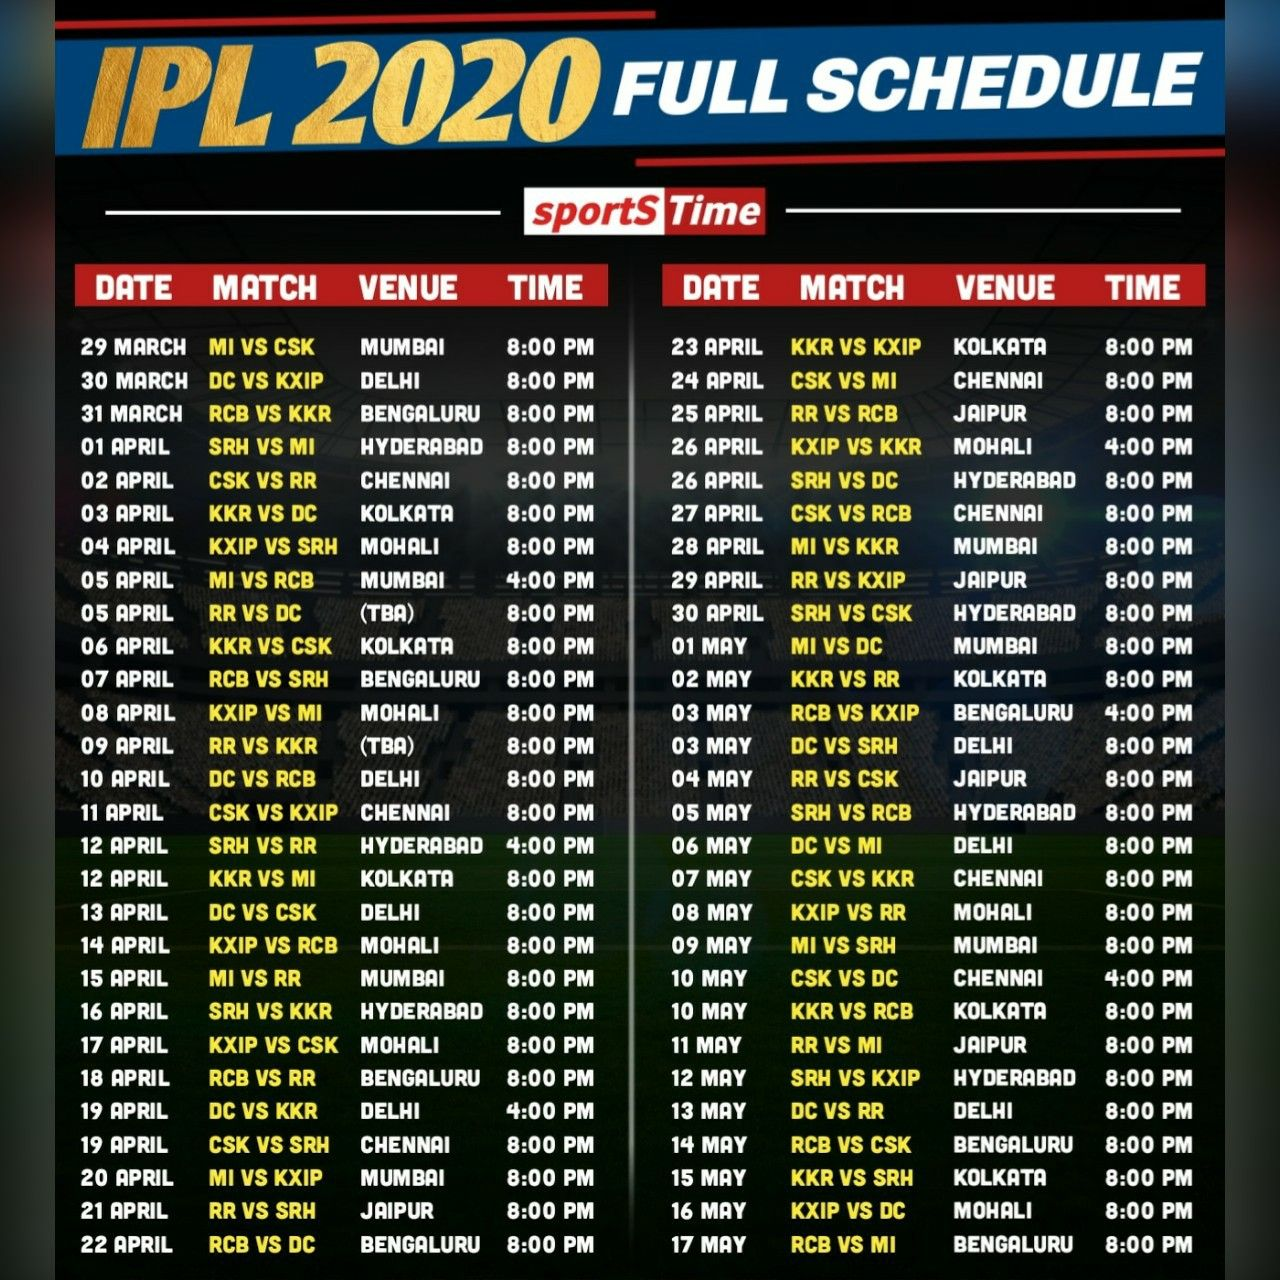 IPL 2020 SCHEDULE in 2020 Ipl, Match schedule, Schedule